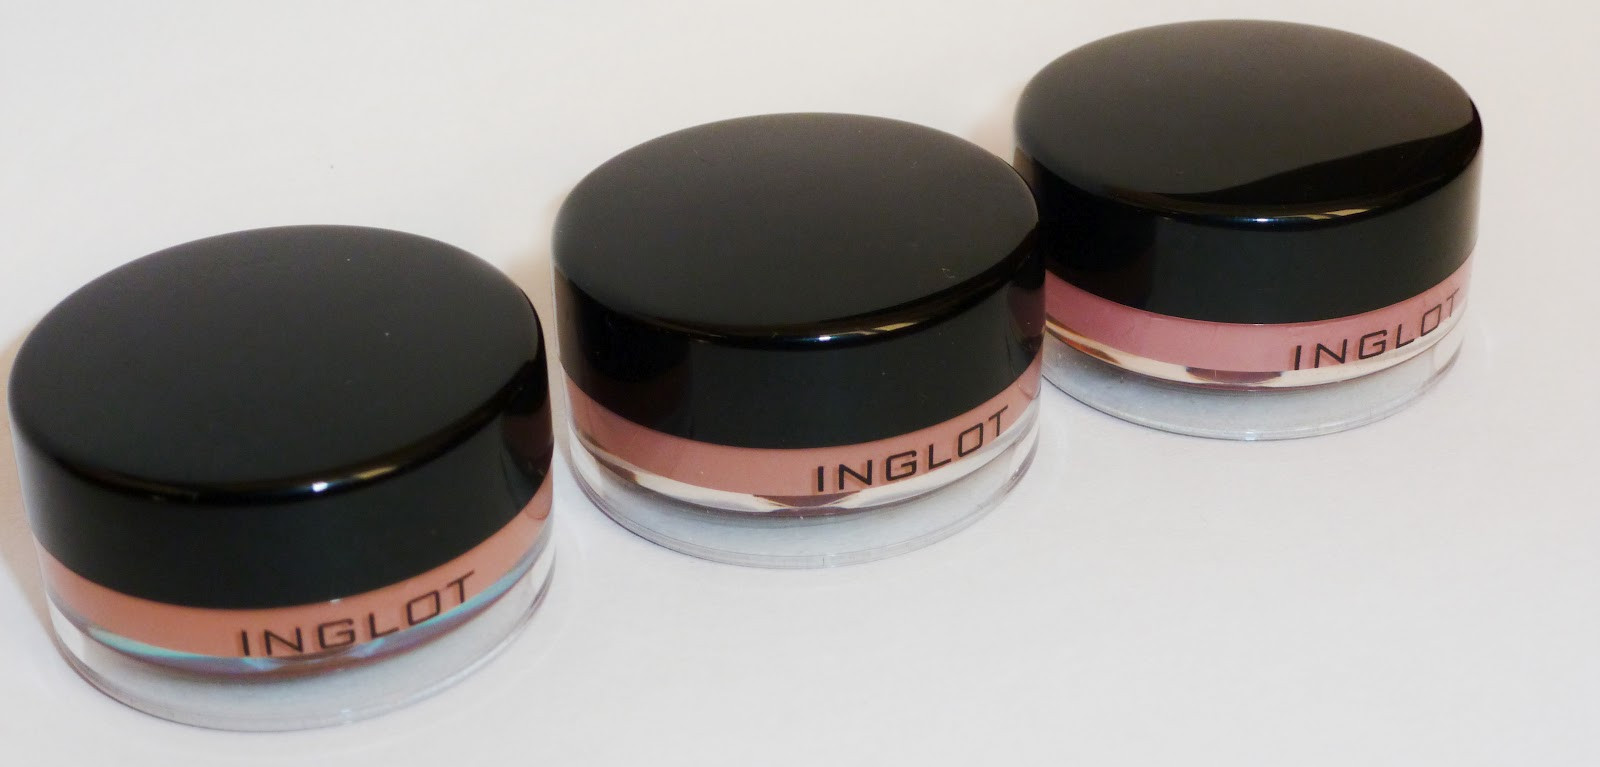 Inglot AMC Cream Blush